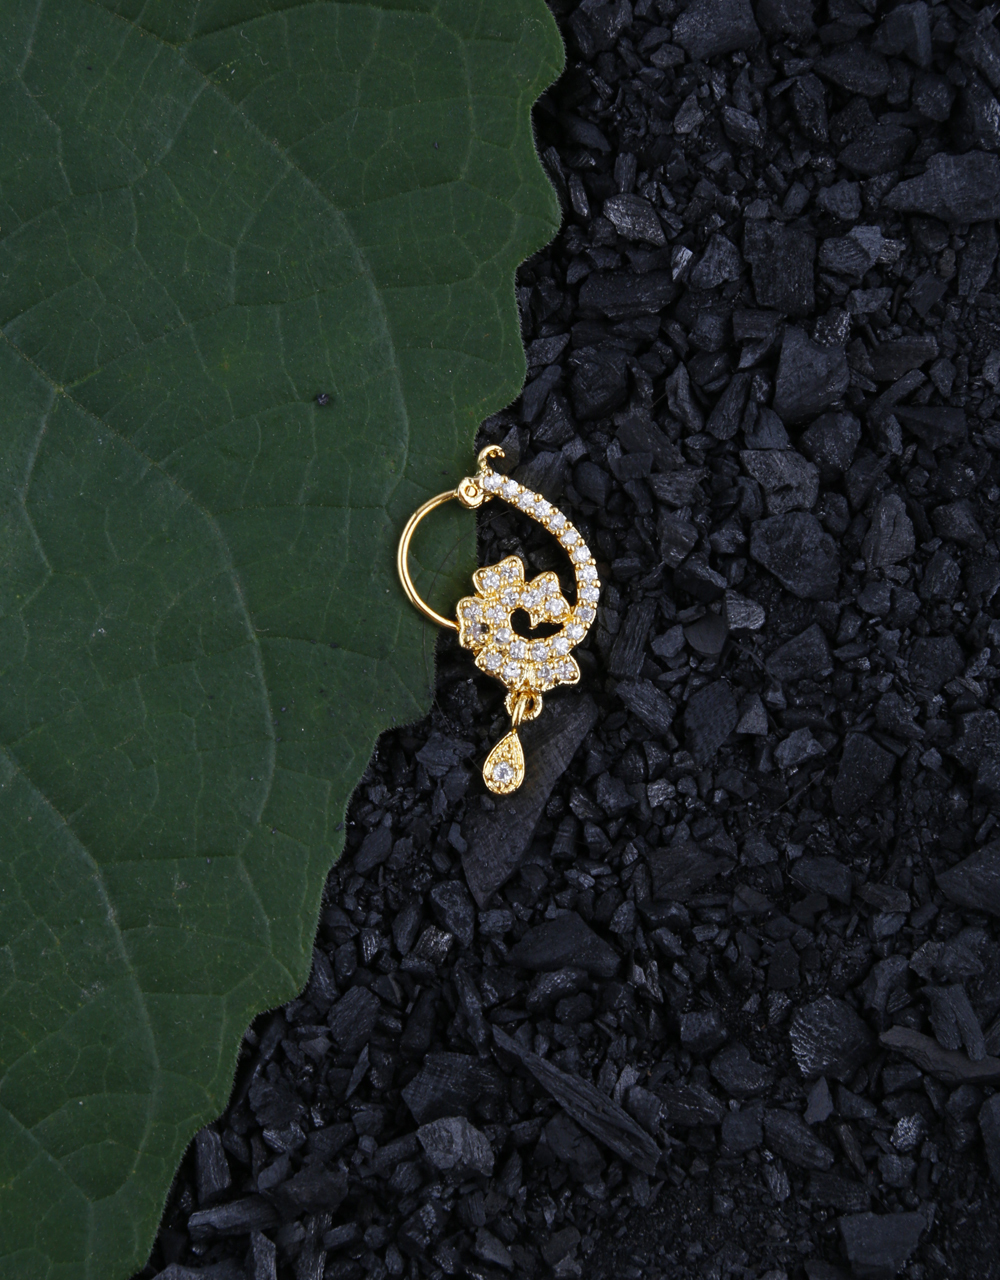 Floral Design Appealing Diamond Studded Piercing Nose Ring for Girls